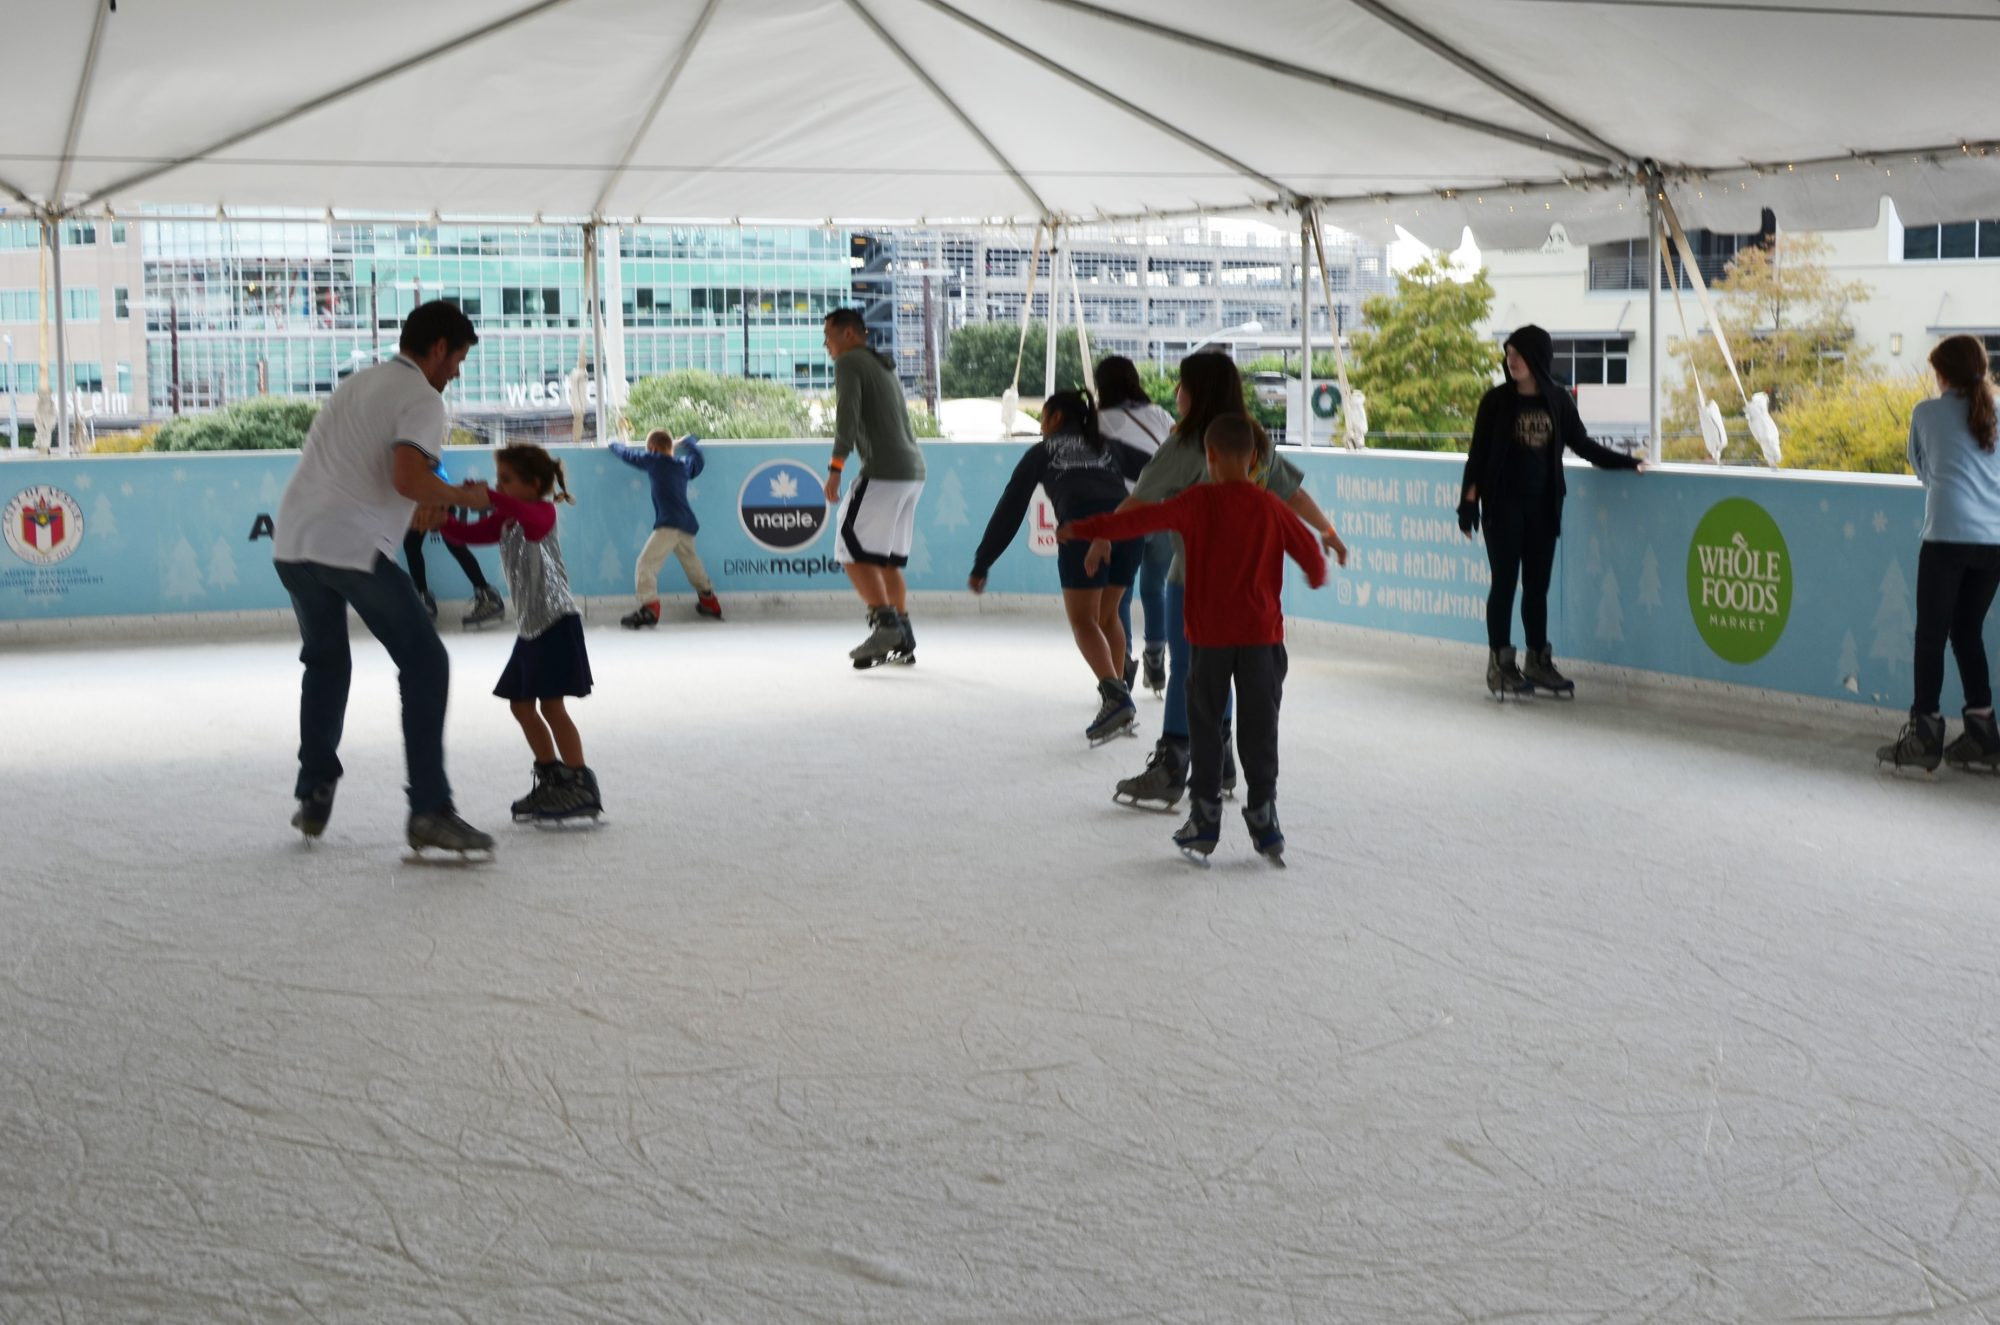 Whole Foods Ice Skating